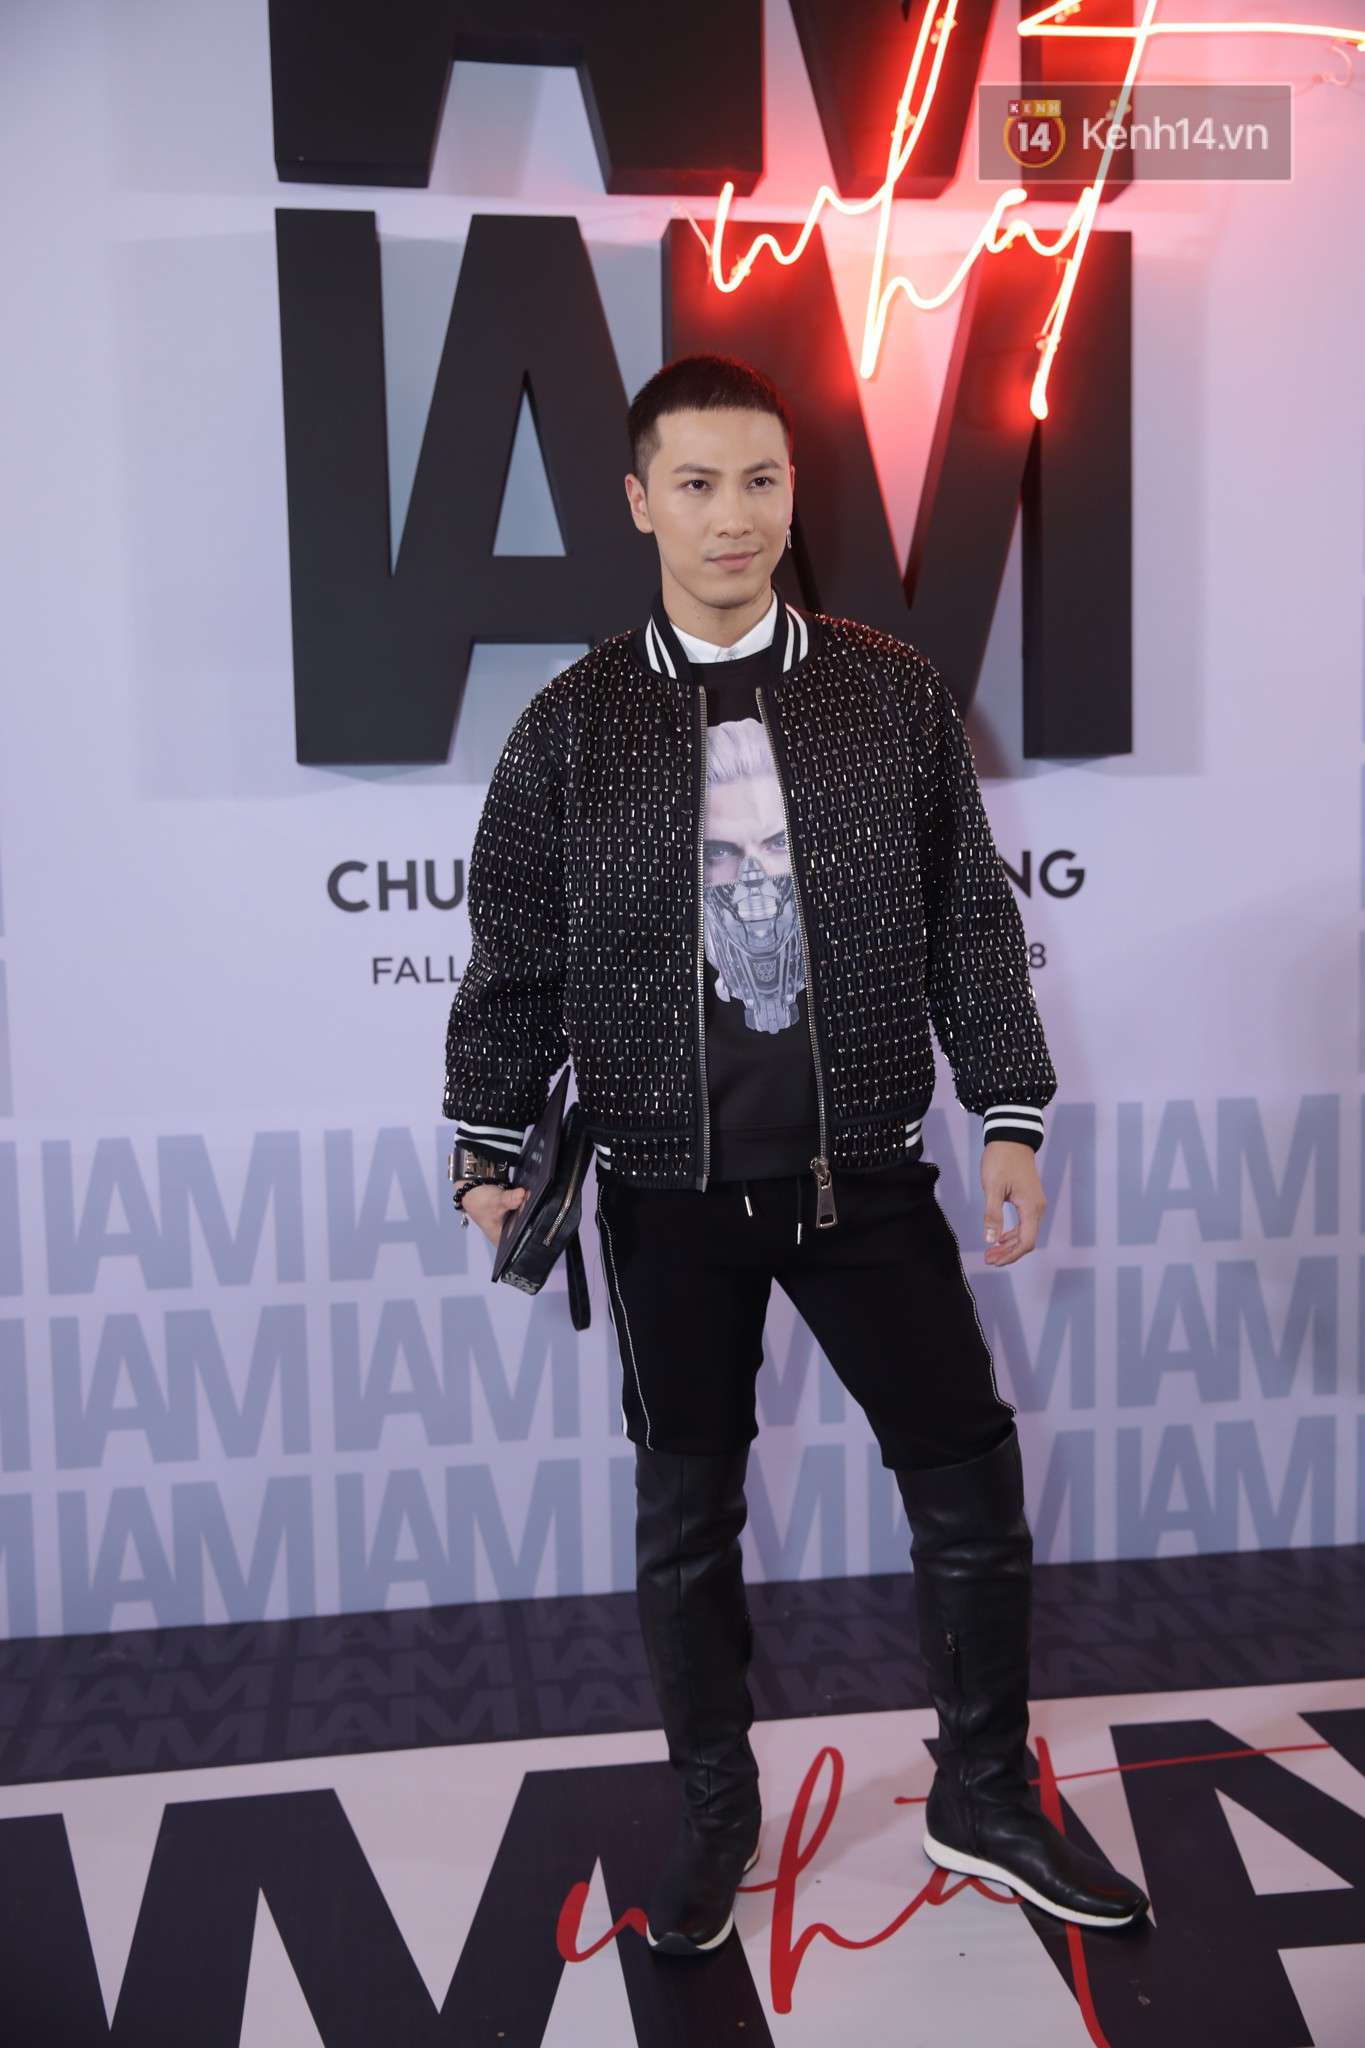 The red carpet Chung Thanh Phong show: it was able to test strange styles, as Quỳnh Anh Shyn caught the bird with rain - Photo 35.